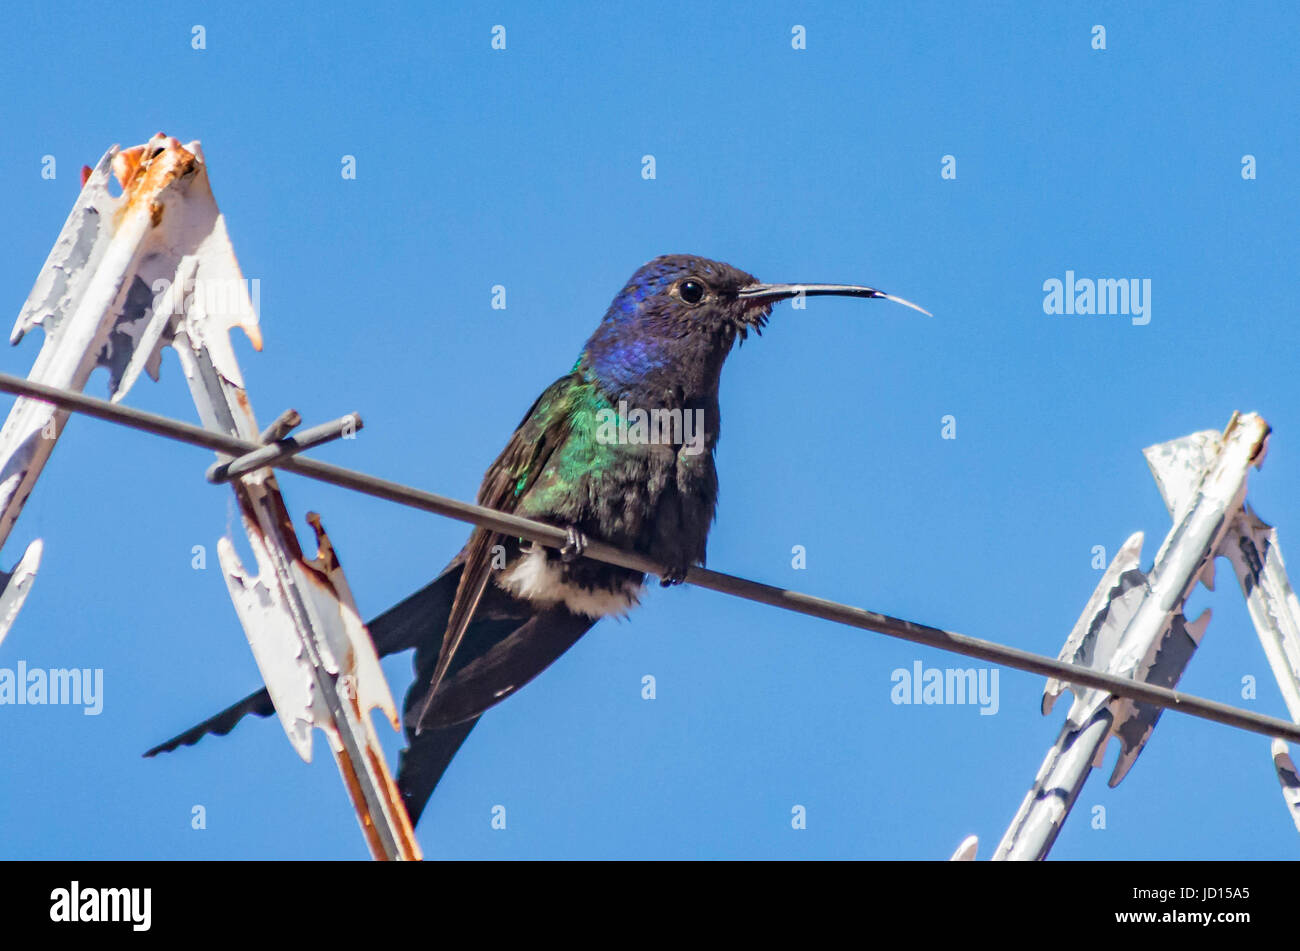 Swallow Tailed Hummingbird sticking out tongue - Stock Image